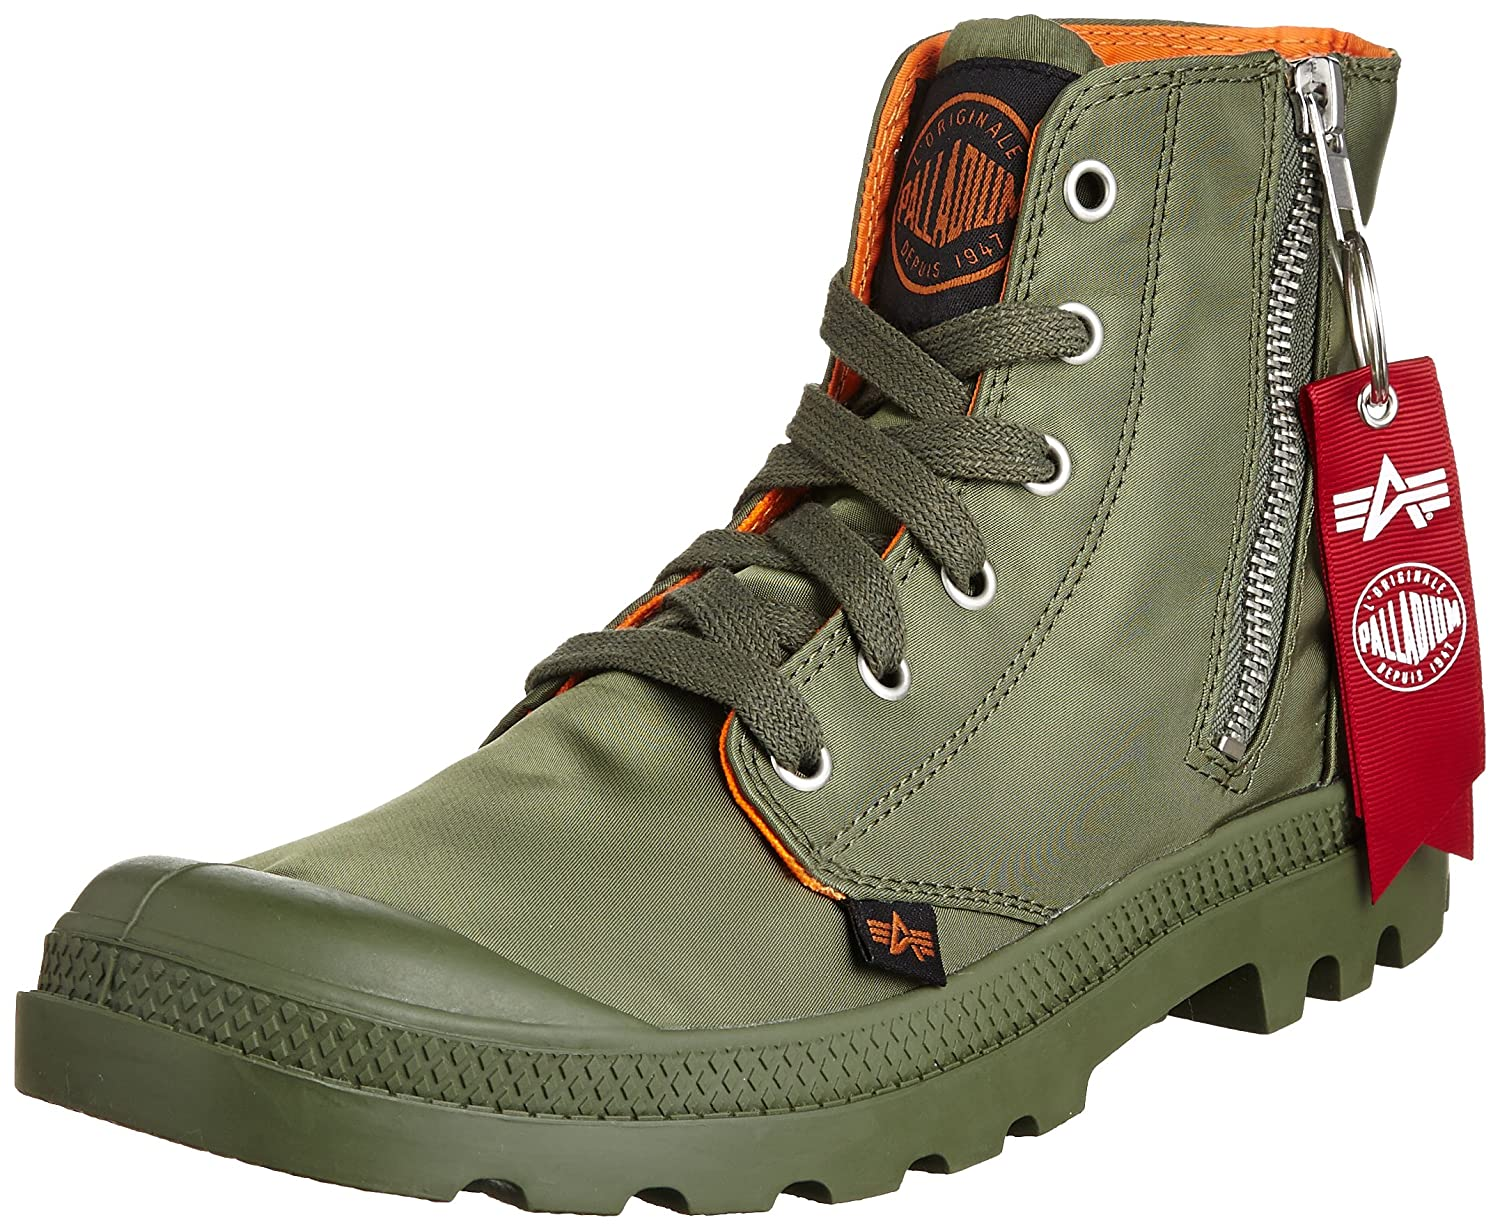 Amazon.com: Palladium Men's Pampa High Zip MA Boot,Sage/Orange,8 M ...